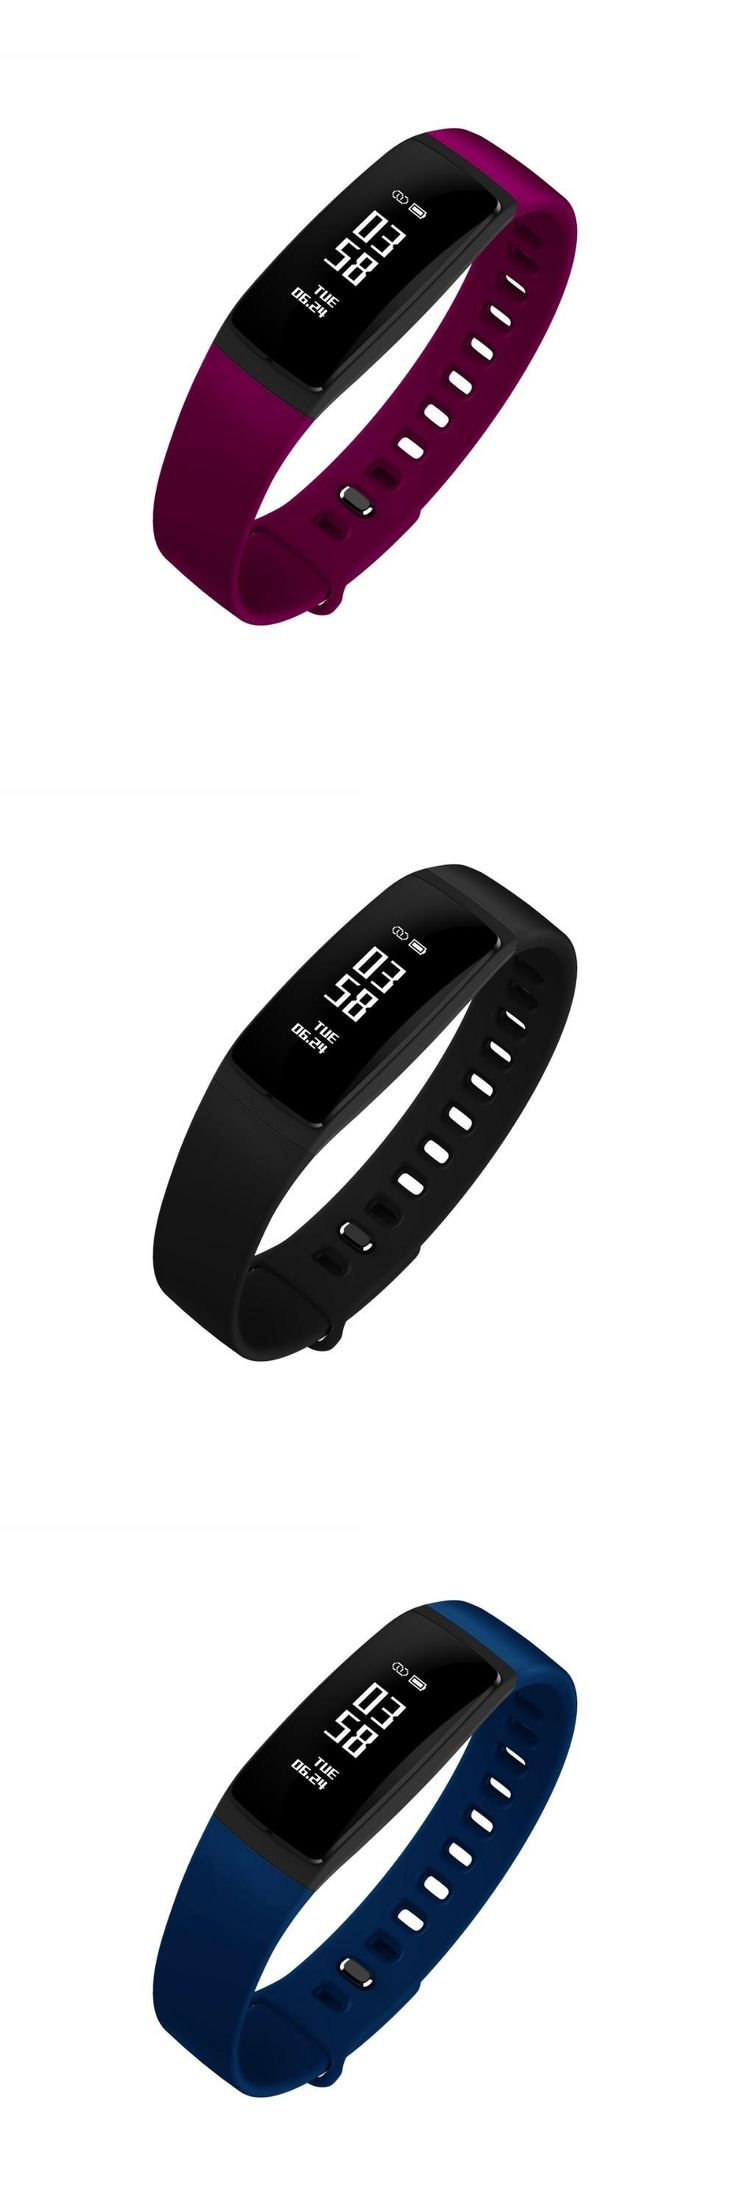 Small body big smart V07S fitness bracelt countdown Stopwatch alarm clocks Blood Pressure  Heart Rate Tracker smart wristbands